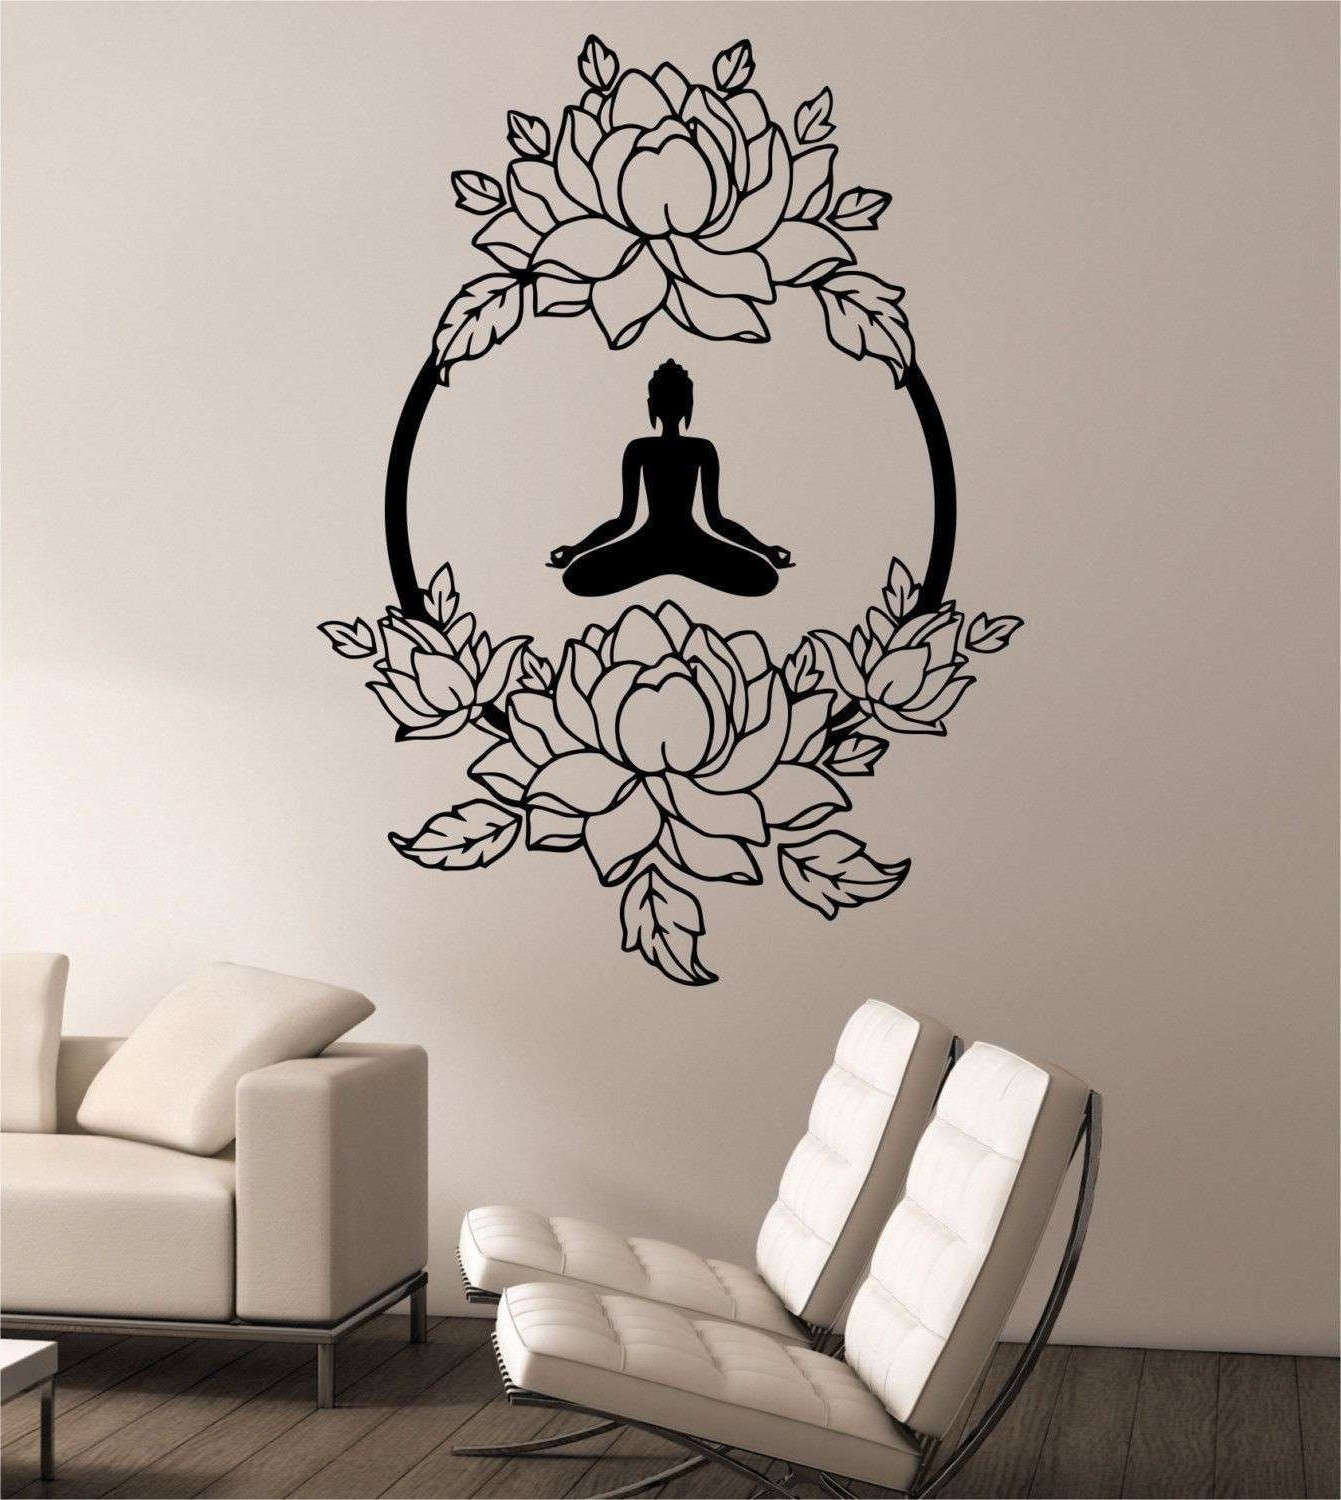 Cool Wall Art For Bedroom Fresh Wall Decal Luxury 1 Kirkland Wall Within Trendy Cool Wall Art (View 5 of 15)